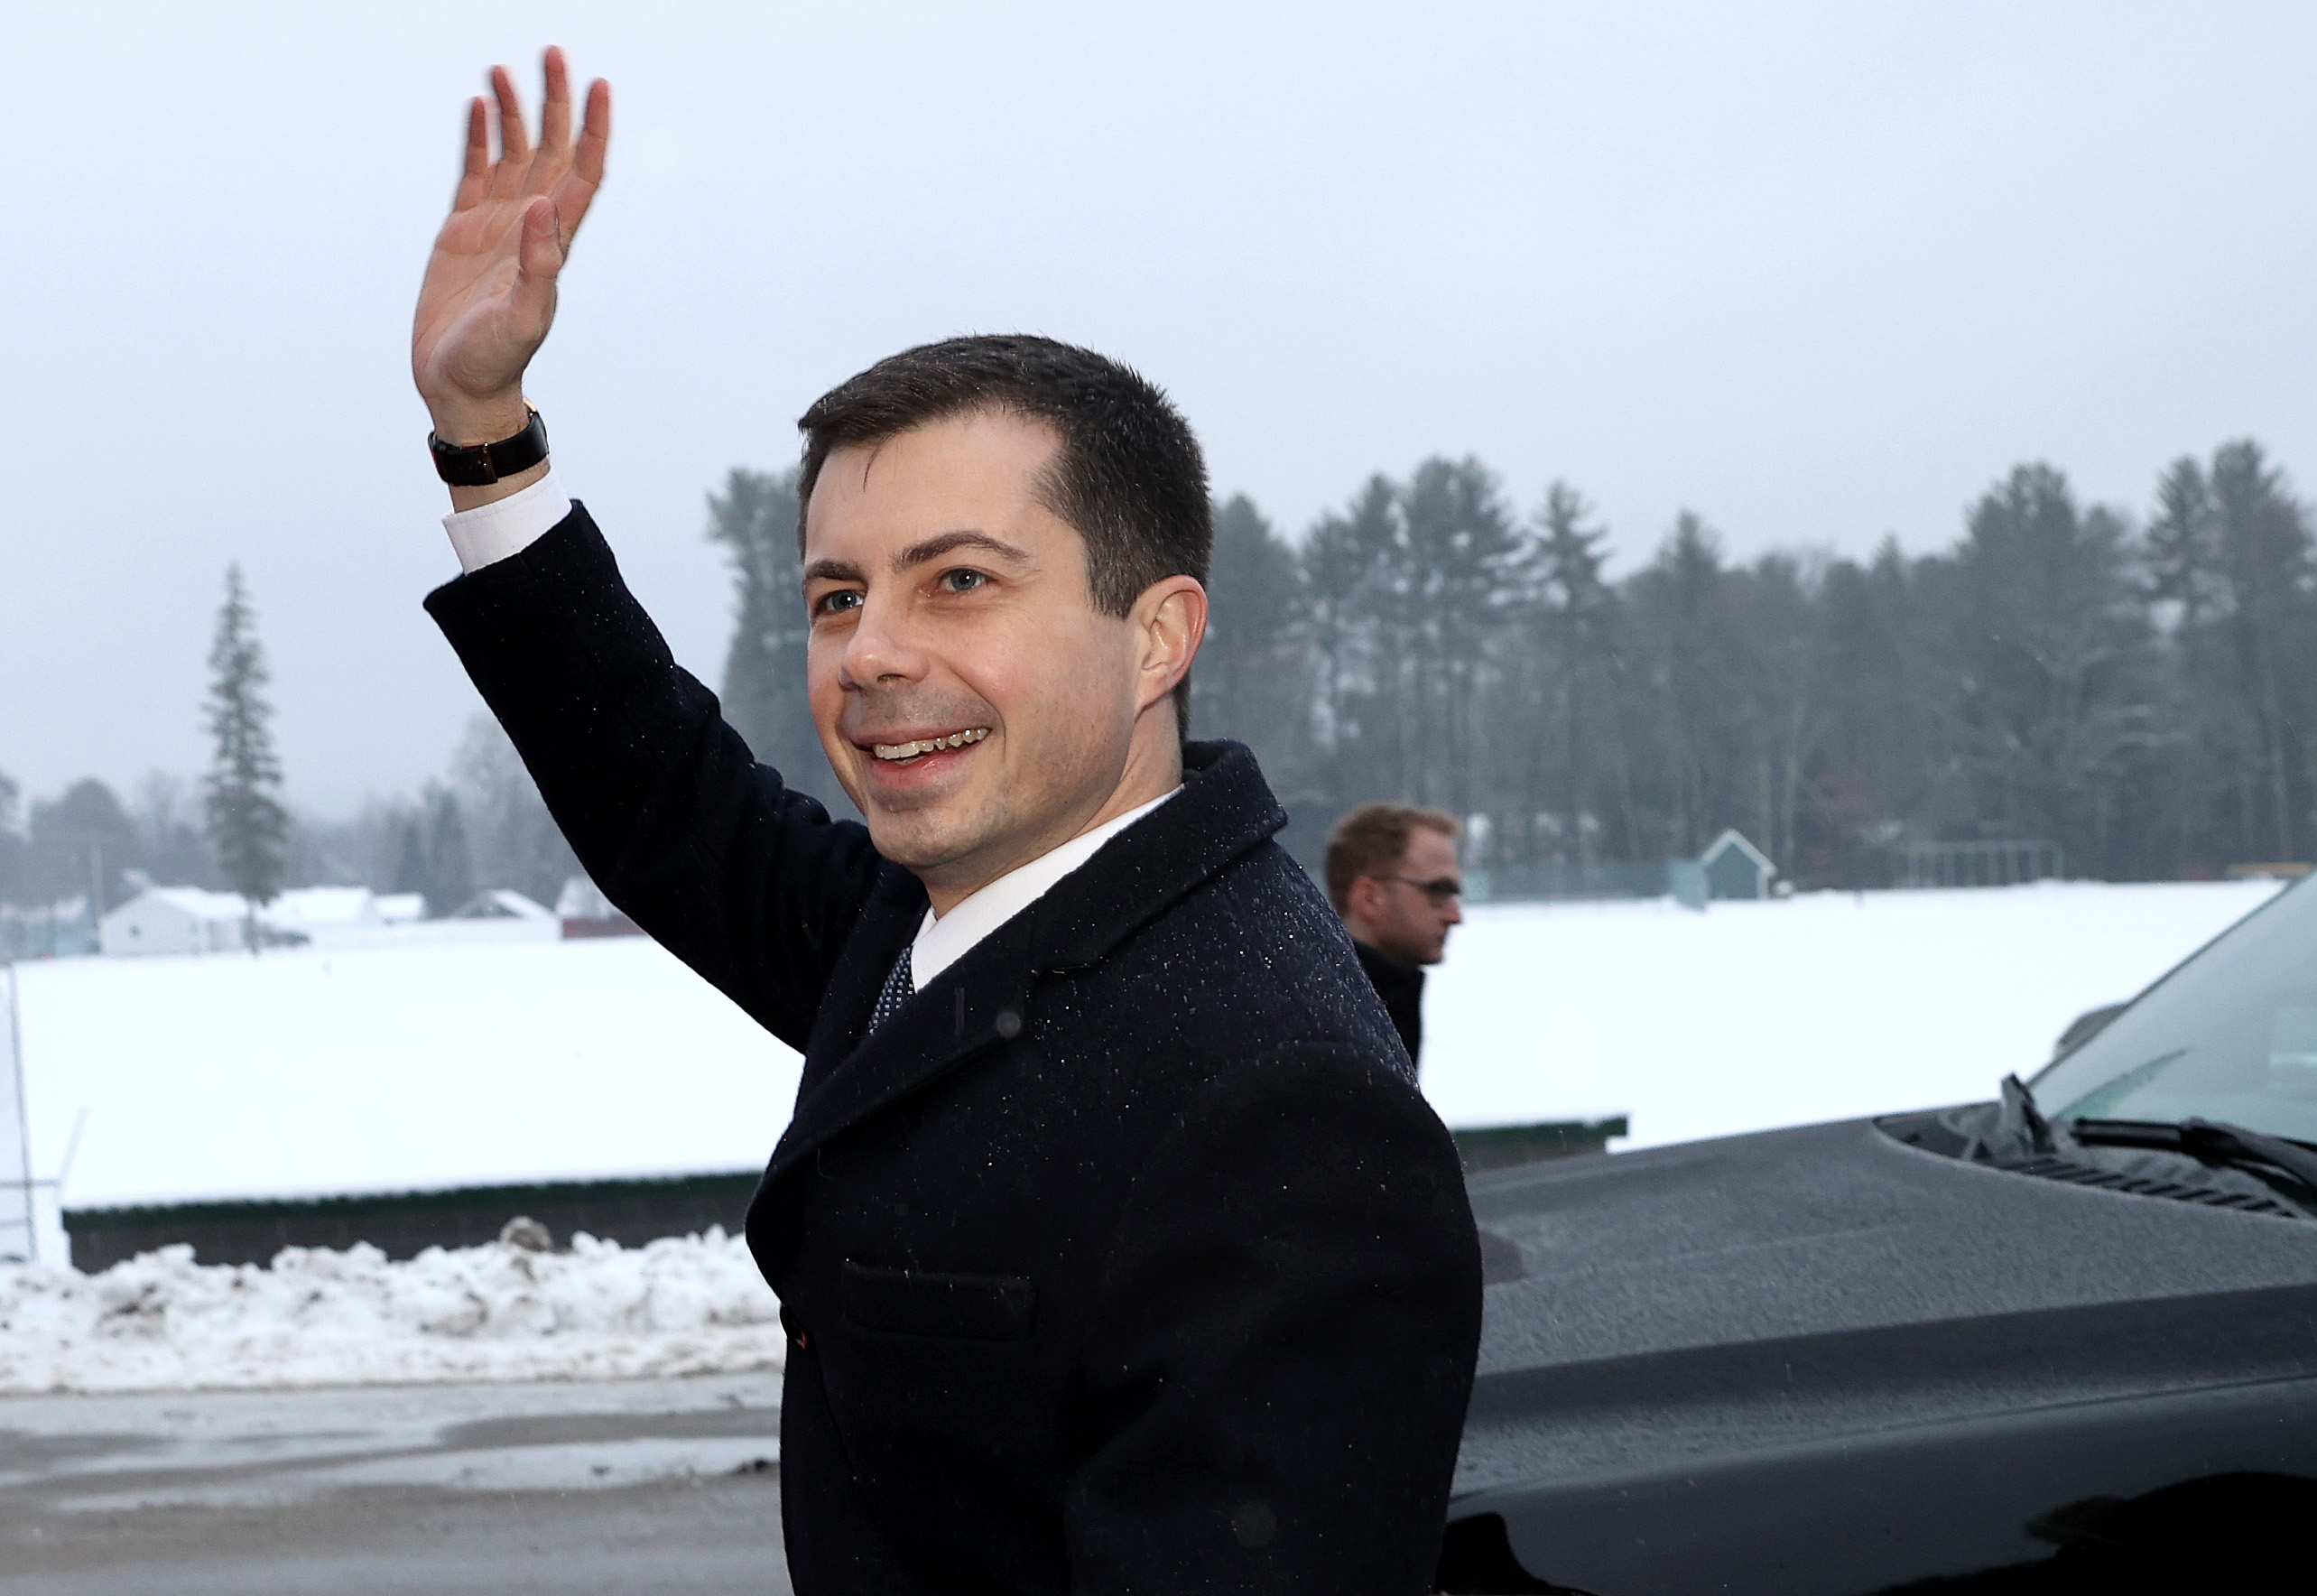 HOPKINTON, NEW HAMPSHIRE - FEBRUARY 11: Democratic presidential candidate former South Bend, Indiana Mayor Pete Buttigieg leaves a polling station after greeting supporters outside Hopkinton High School February 11, 2020 in Hopkinton, New Hampshire. New Hampshire holds its first in the nation primary today. (Photo by Win McNamee/Getty Images)